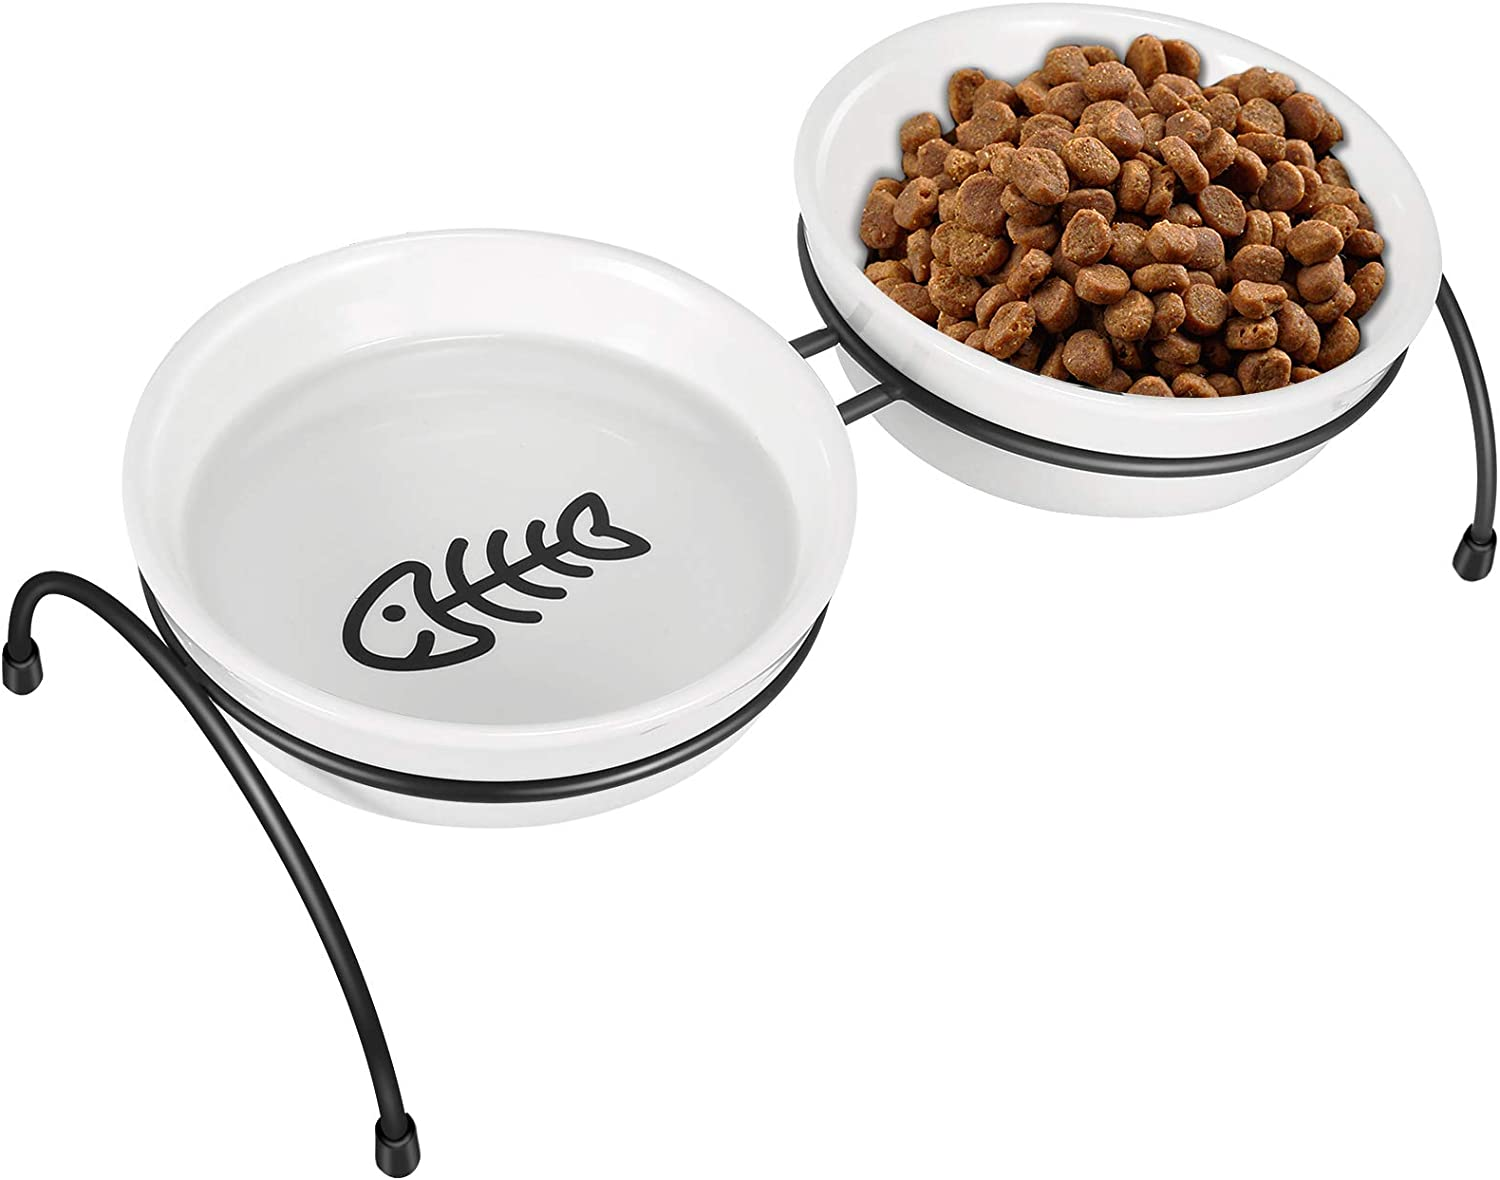 COMESOON Cat Bowls - Raised Cat Bowls for Food and Water, Elevated Cat Food Bowls with Stand, Ceramic Cat Food Bowls for Indoor Cats or Dogs, Cute Cat Feeding Bowls, Dishwasher Safe, 13 Ounces